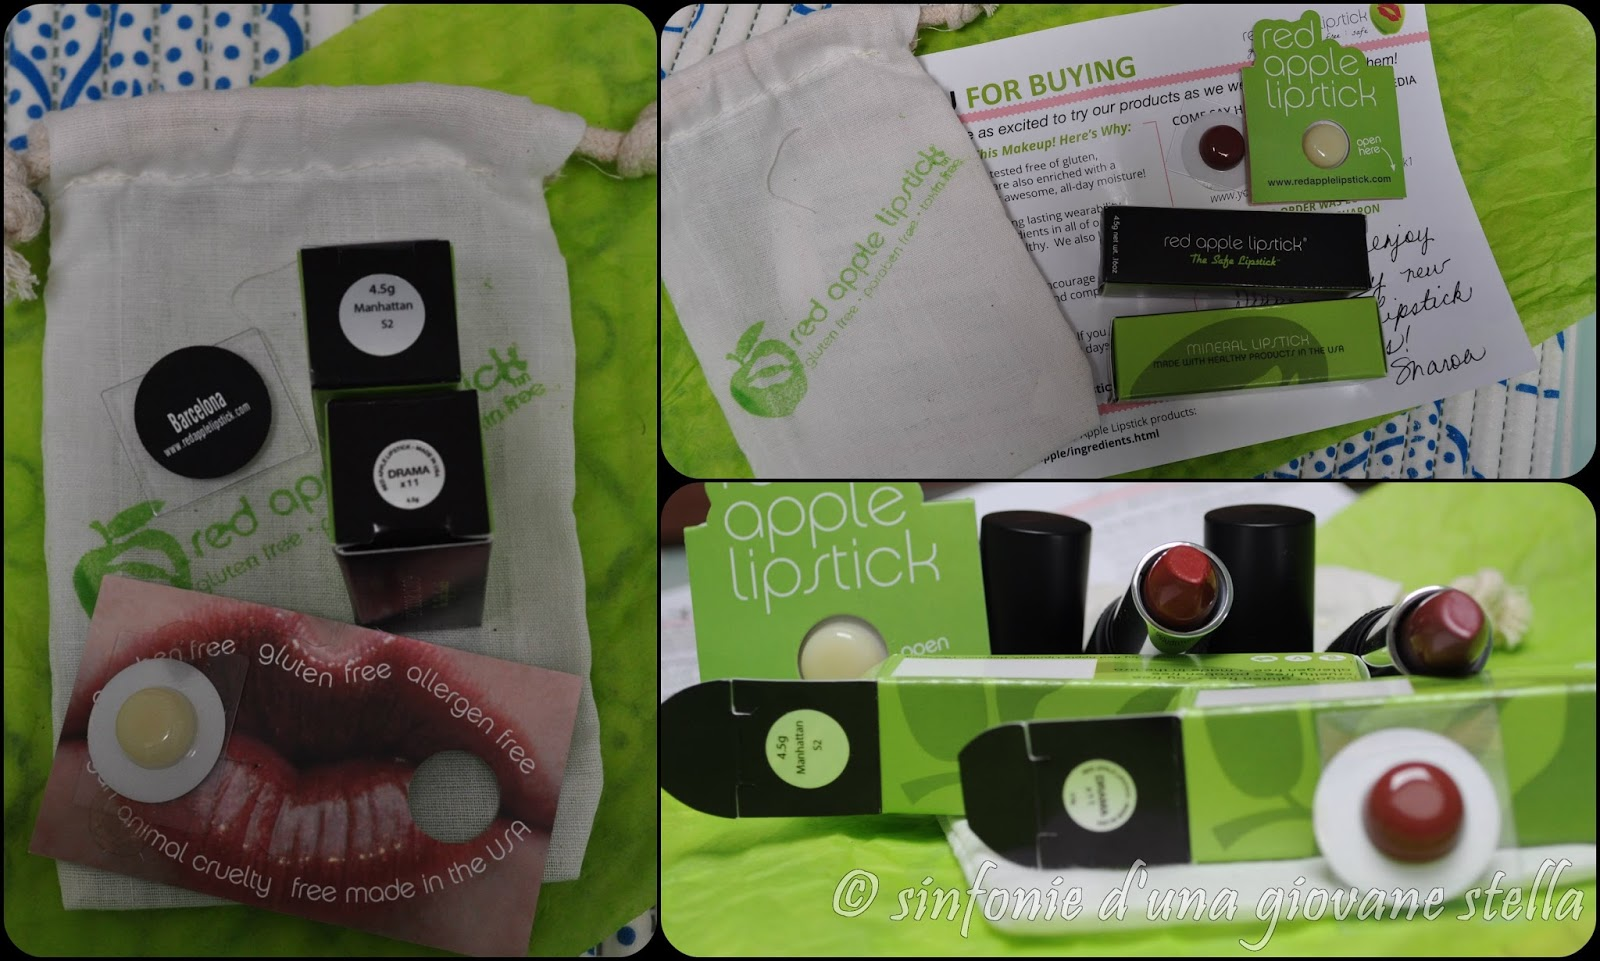 collaborazione ● red apple lipstick gluten free